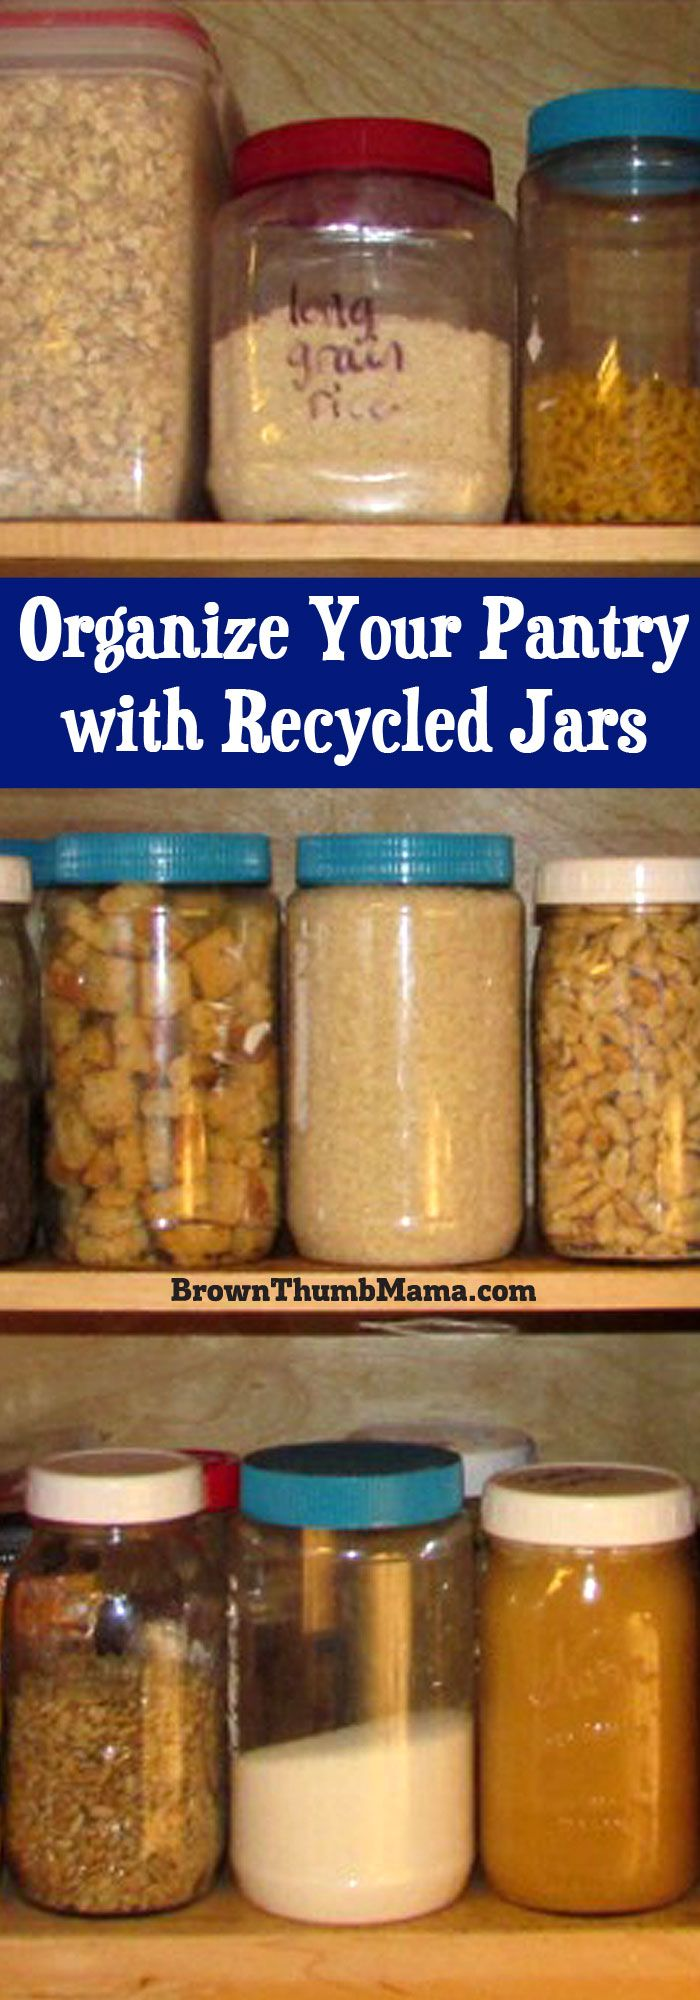 Organize your pantry and store bulk food purchases using containers you already have! Save money and the environment by using recycled jars for storage.